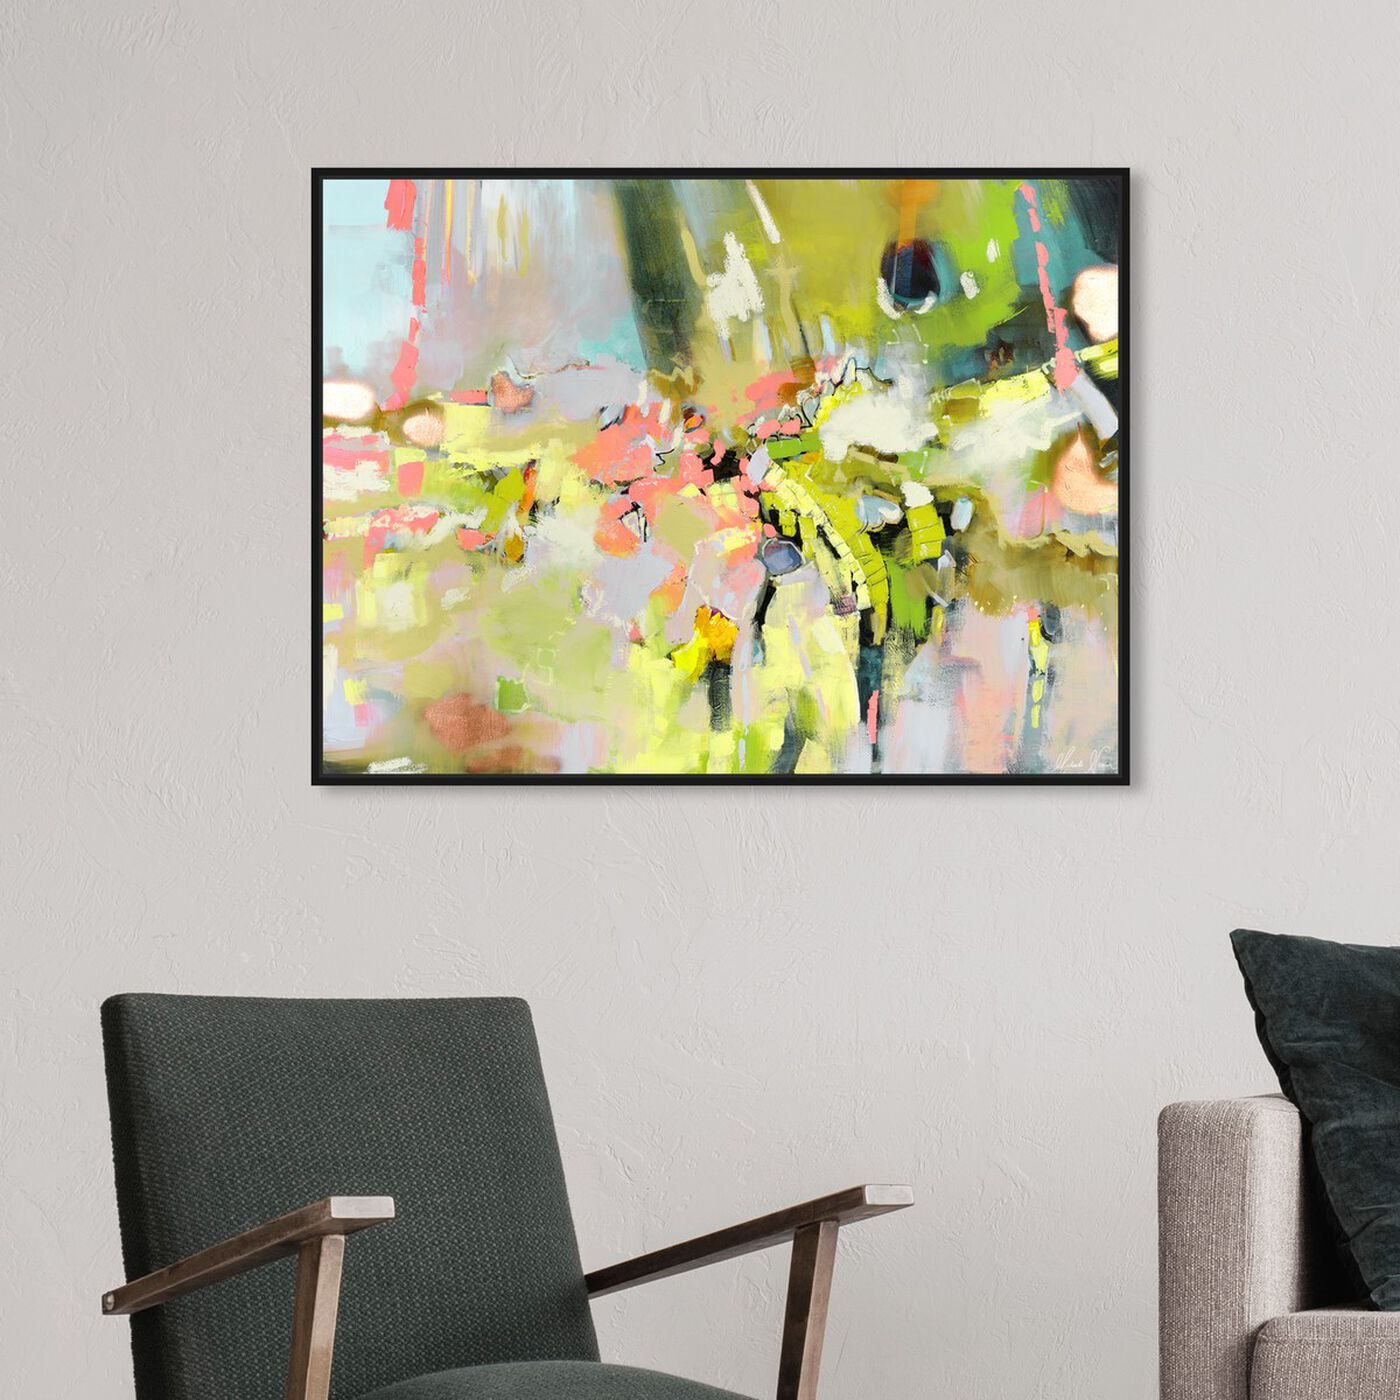 Hanging view of Michaela Nessim - Energy and Breakthrough Bright featuring abstract and paint art.